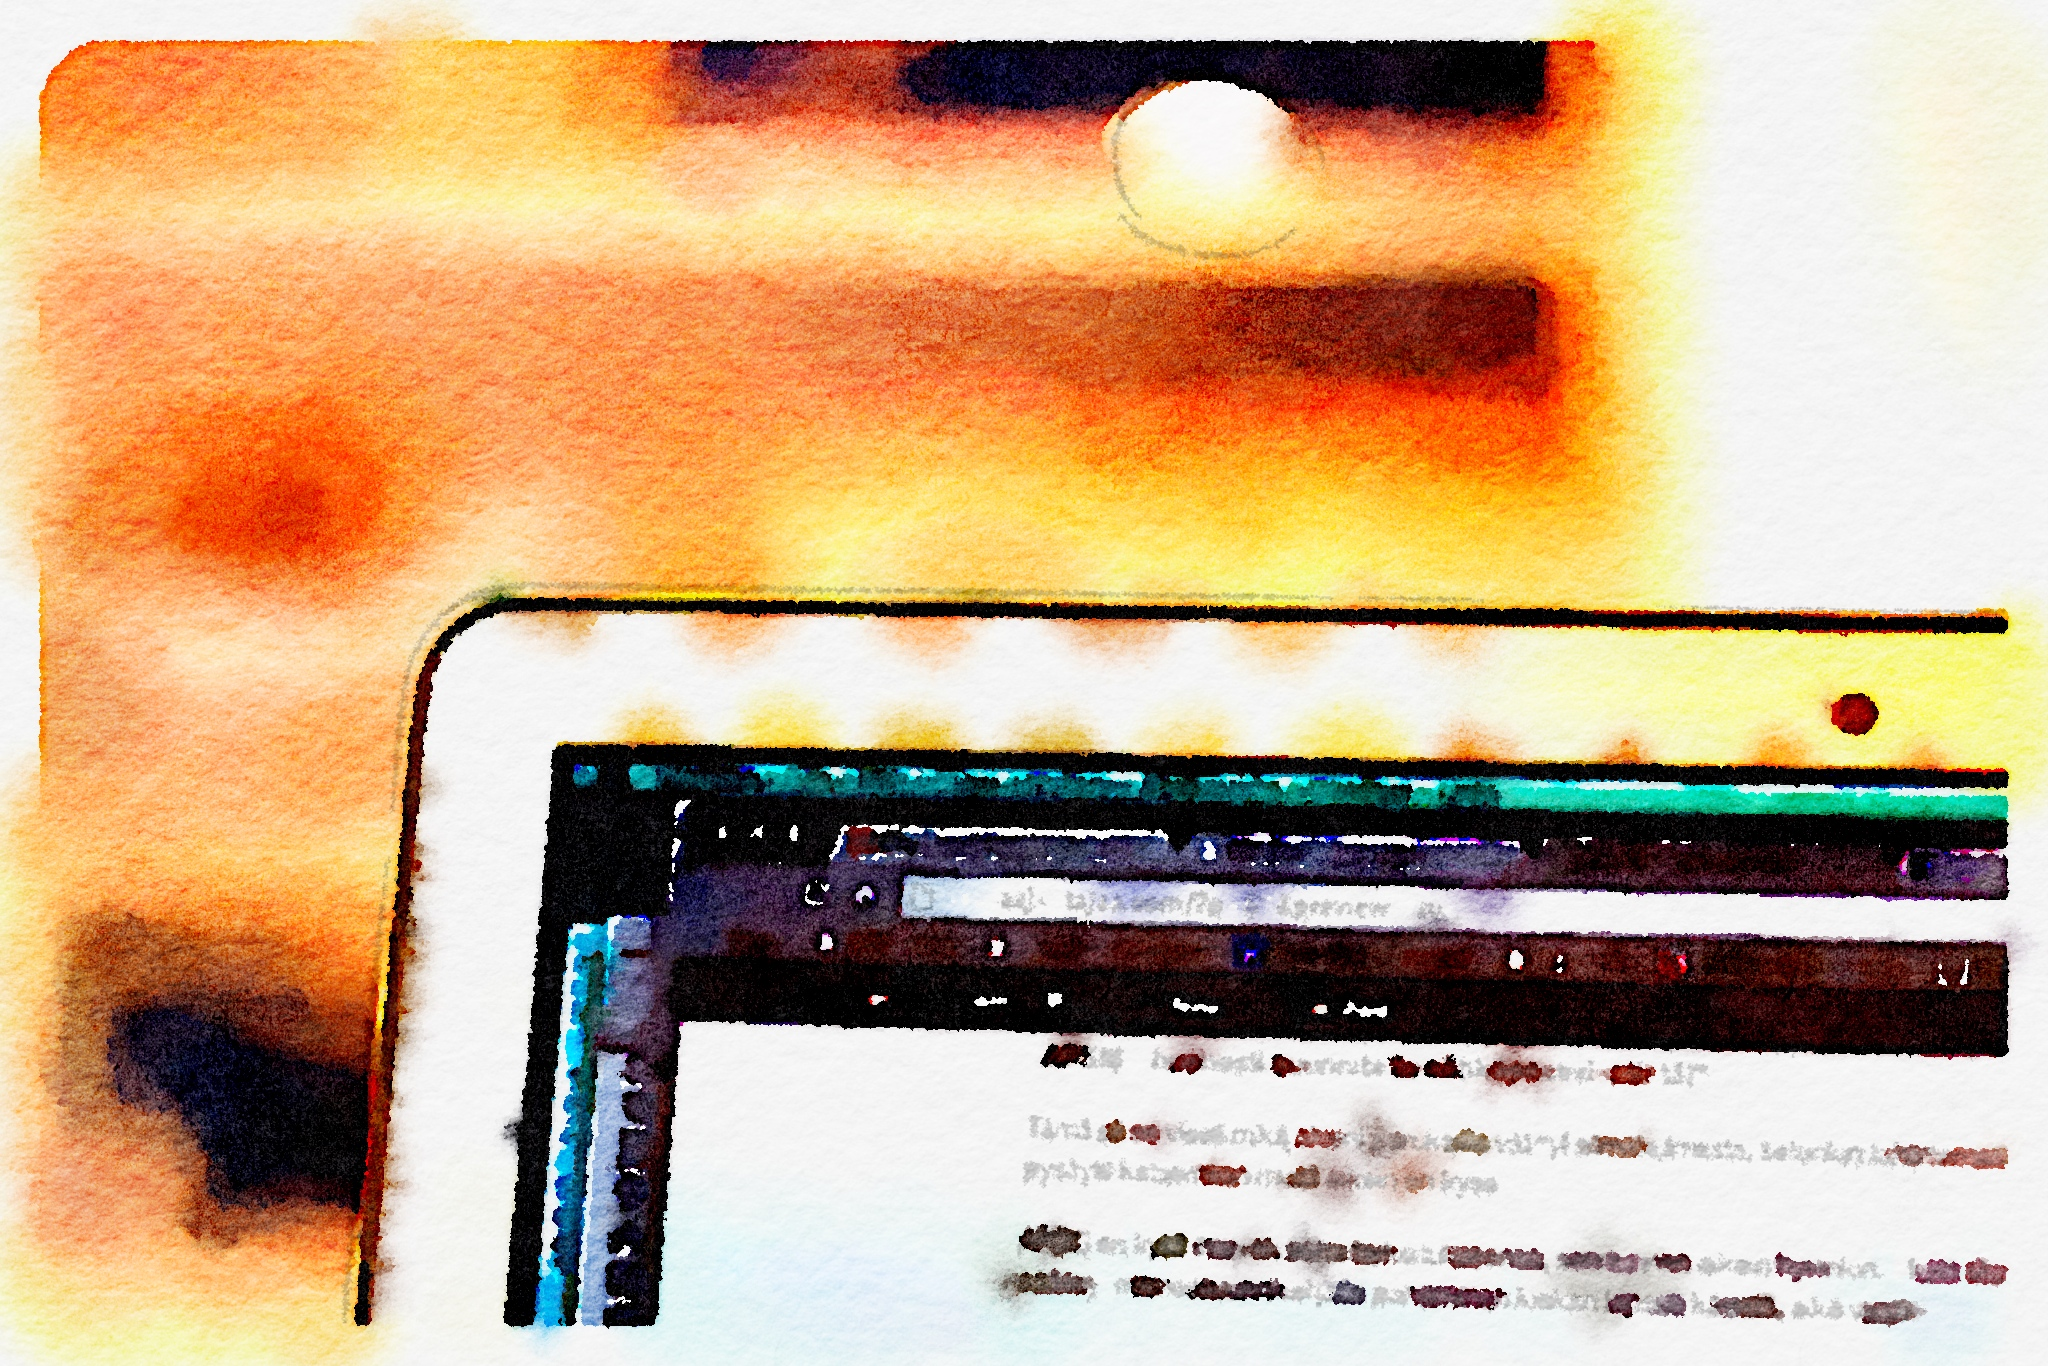 A watercolor mac, created with Waterlogue, an app featured below